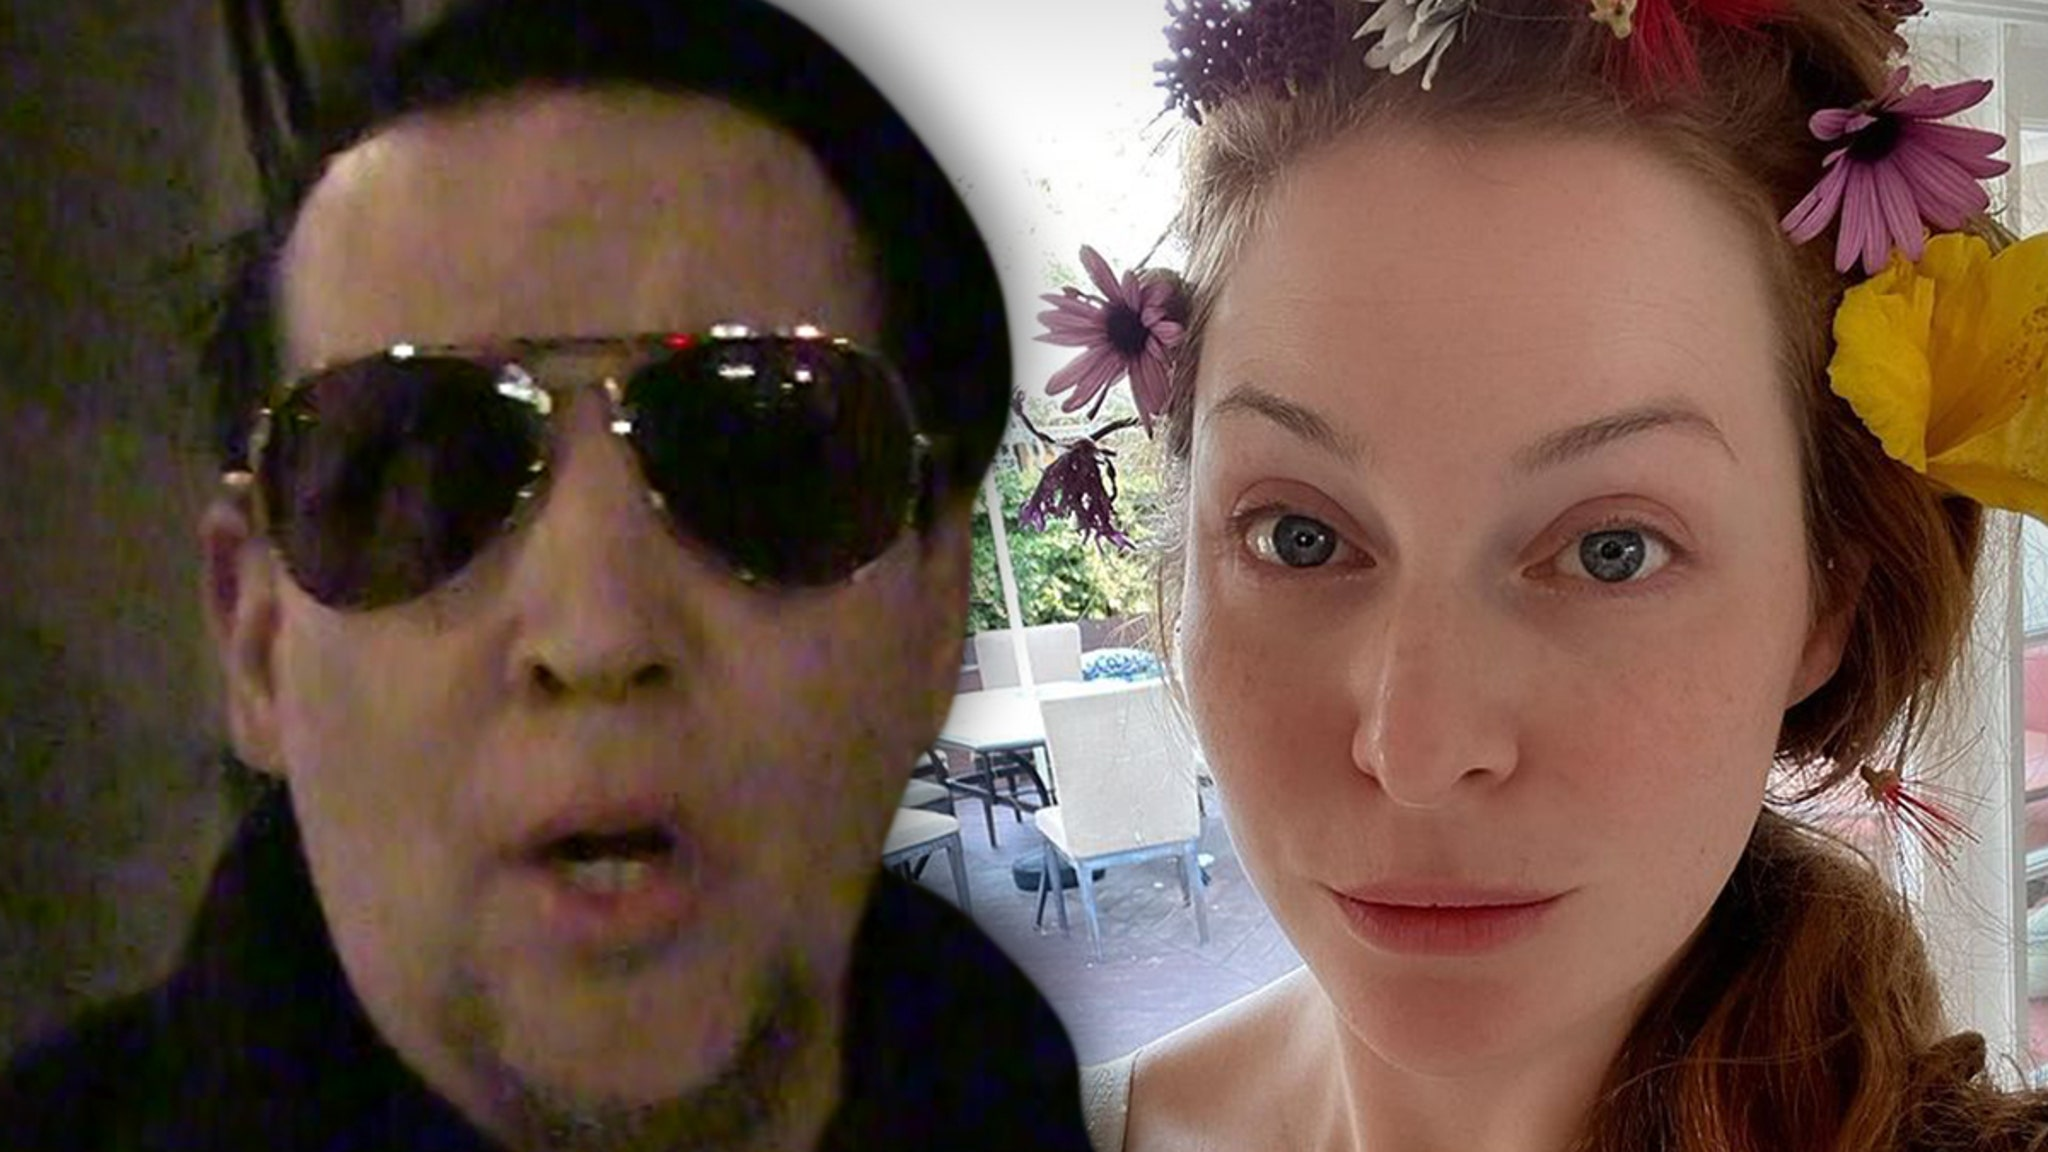 Marilyn Manson Files to Dismiss Esme Bianco's Rape Suit, Claims Malicious Scheming